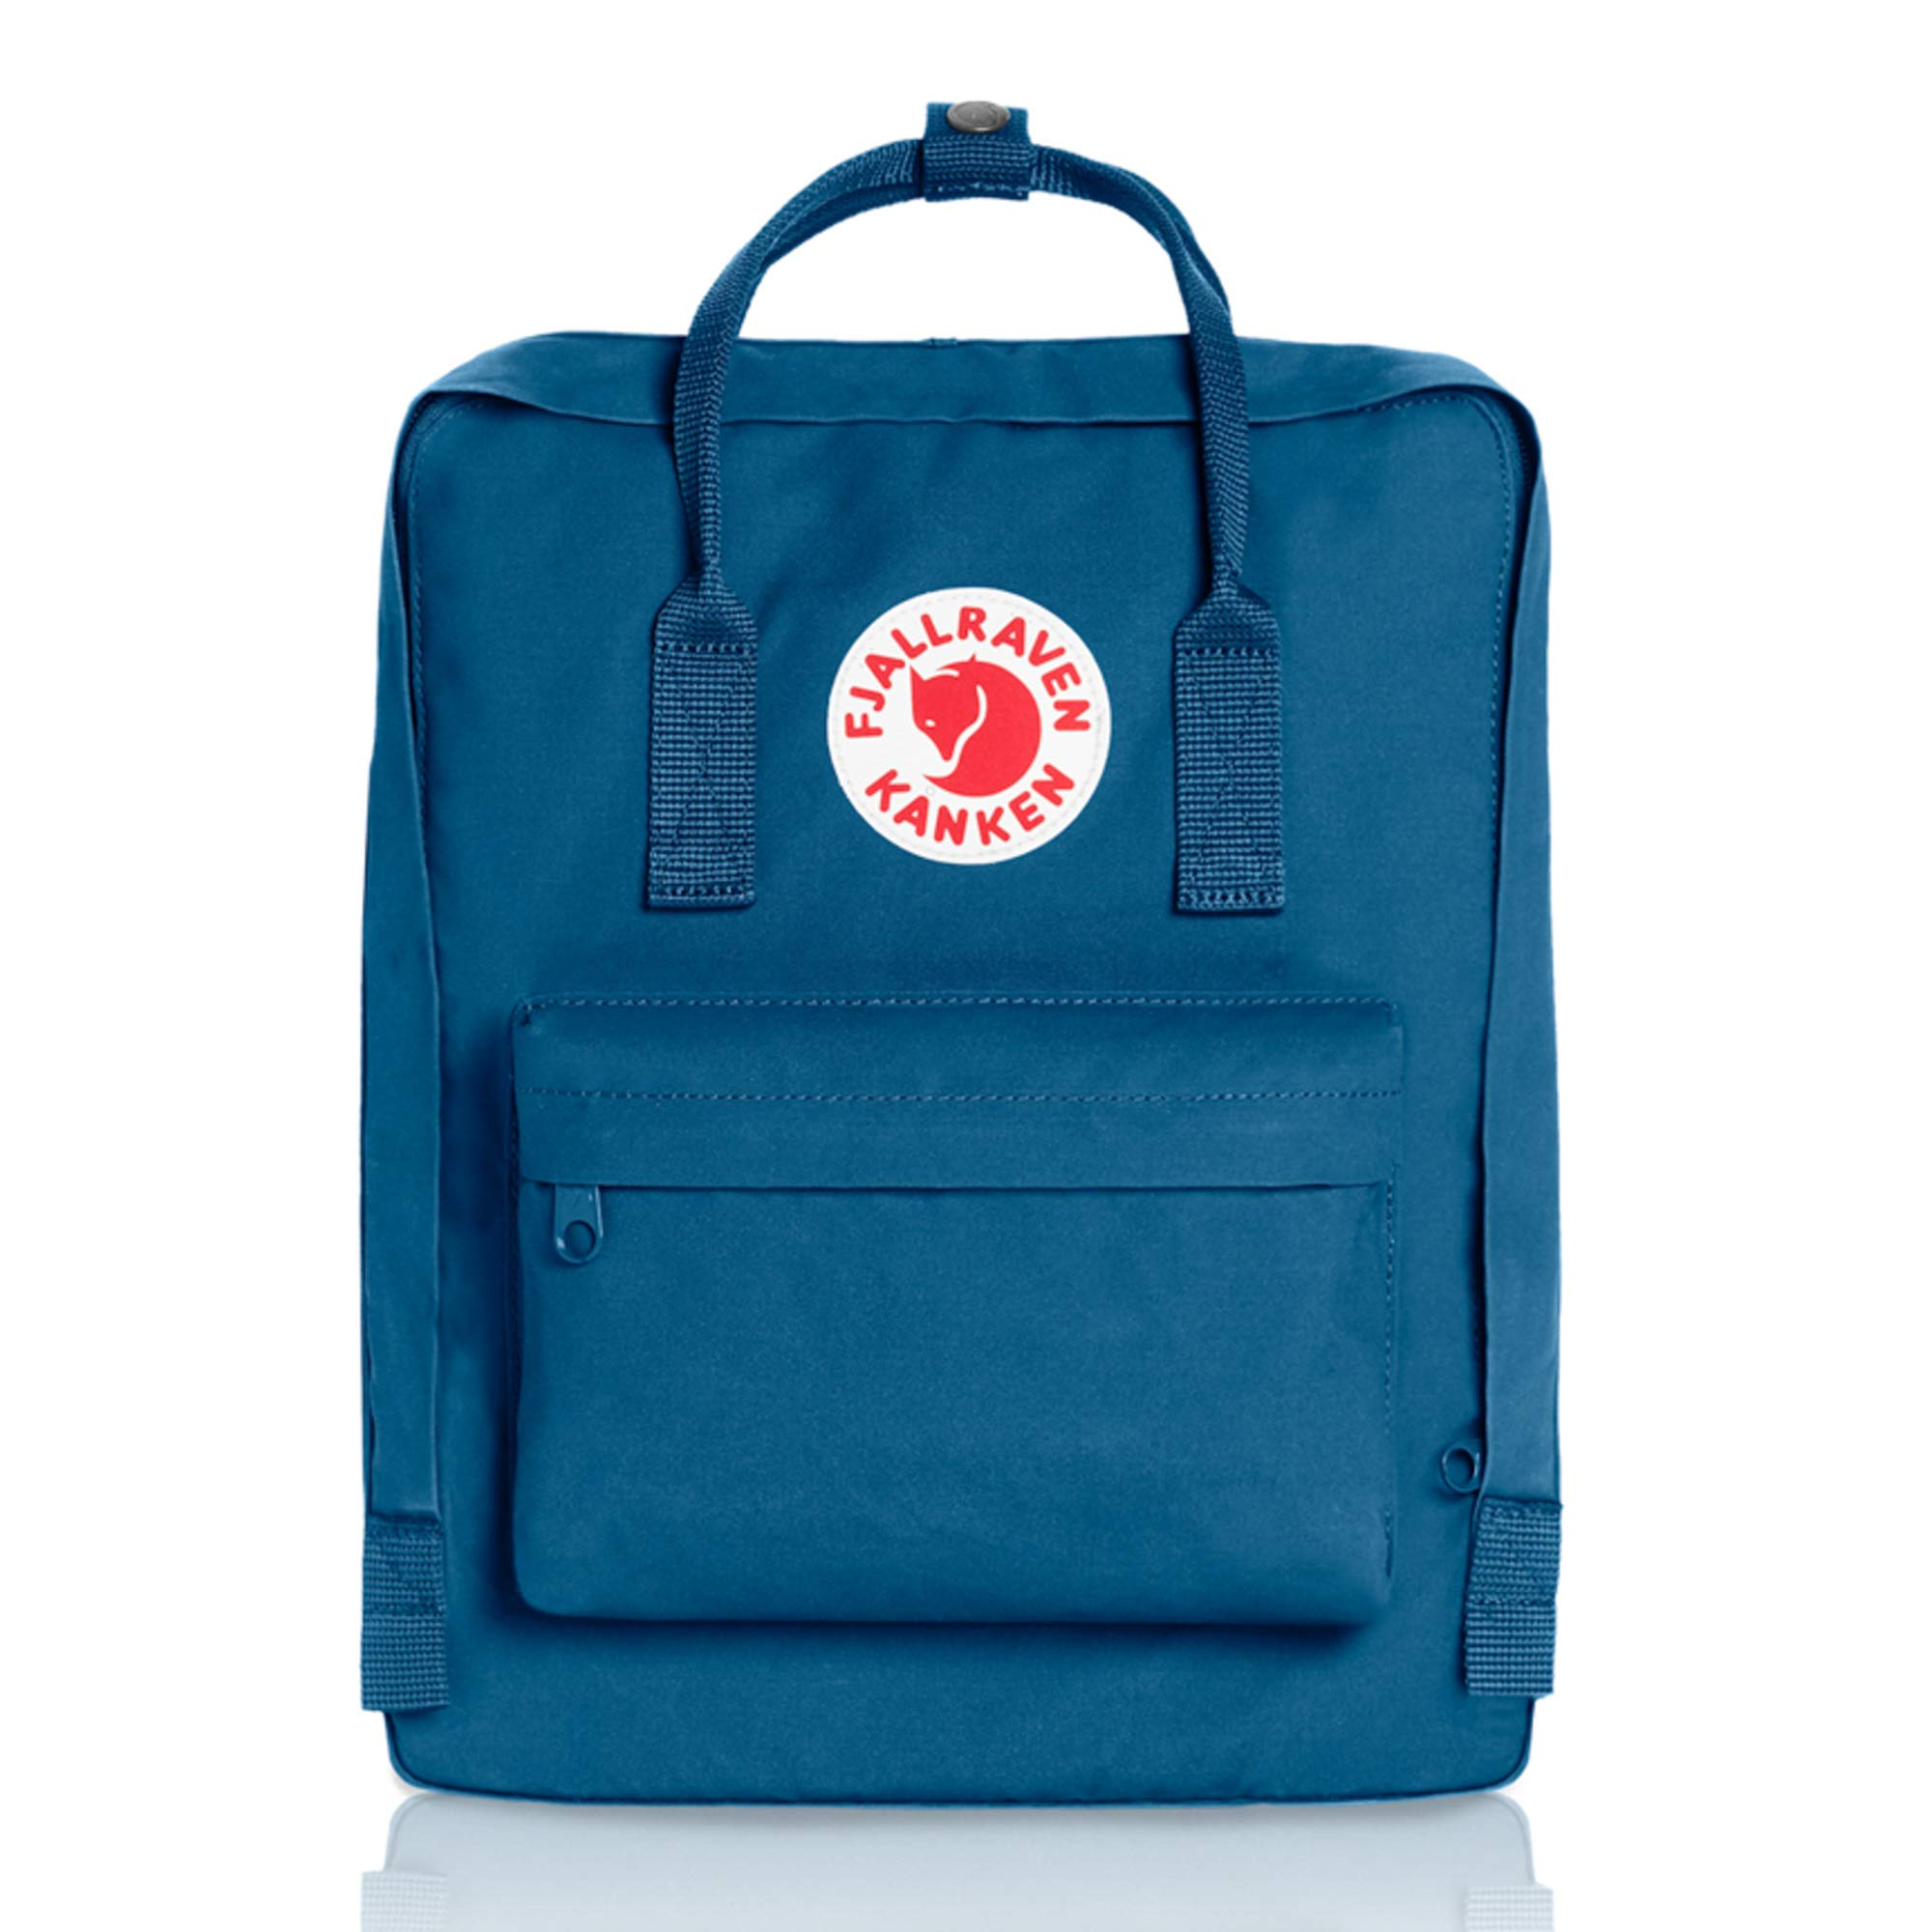 Fjallraven - Kanken Classic Pack, Heritage and Responsibility Since 1960, One Size,Lake Blue